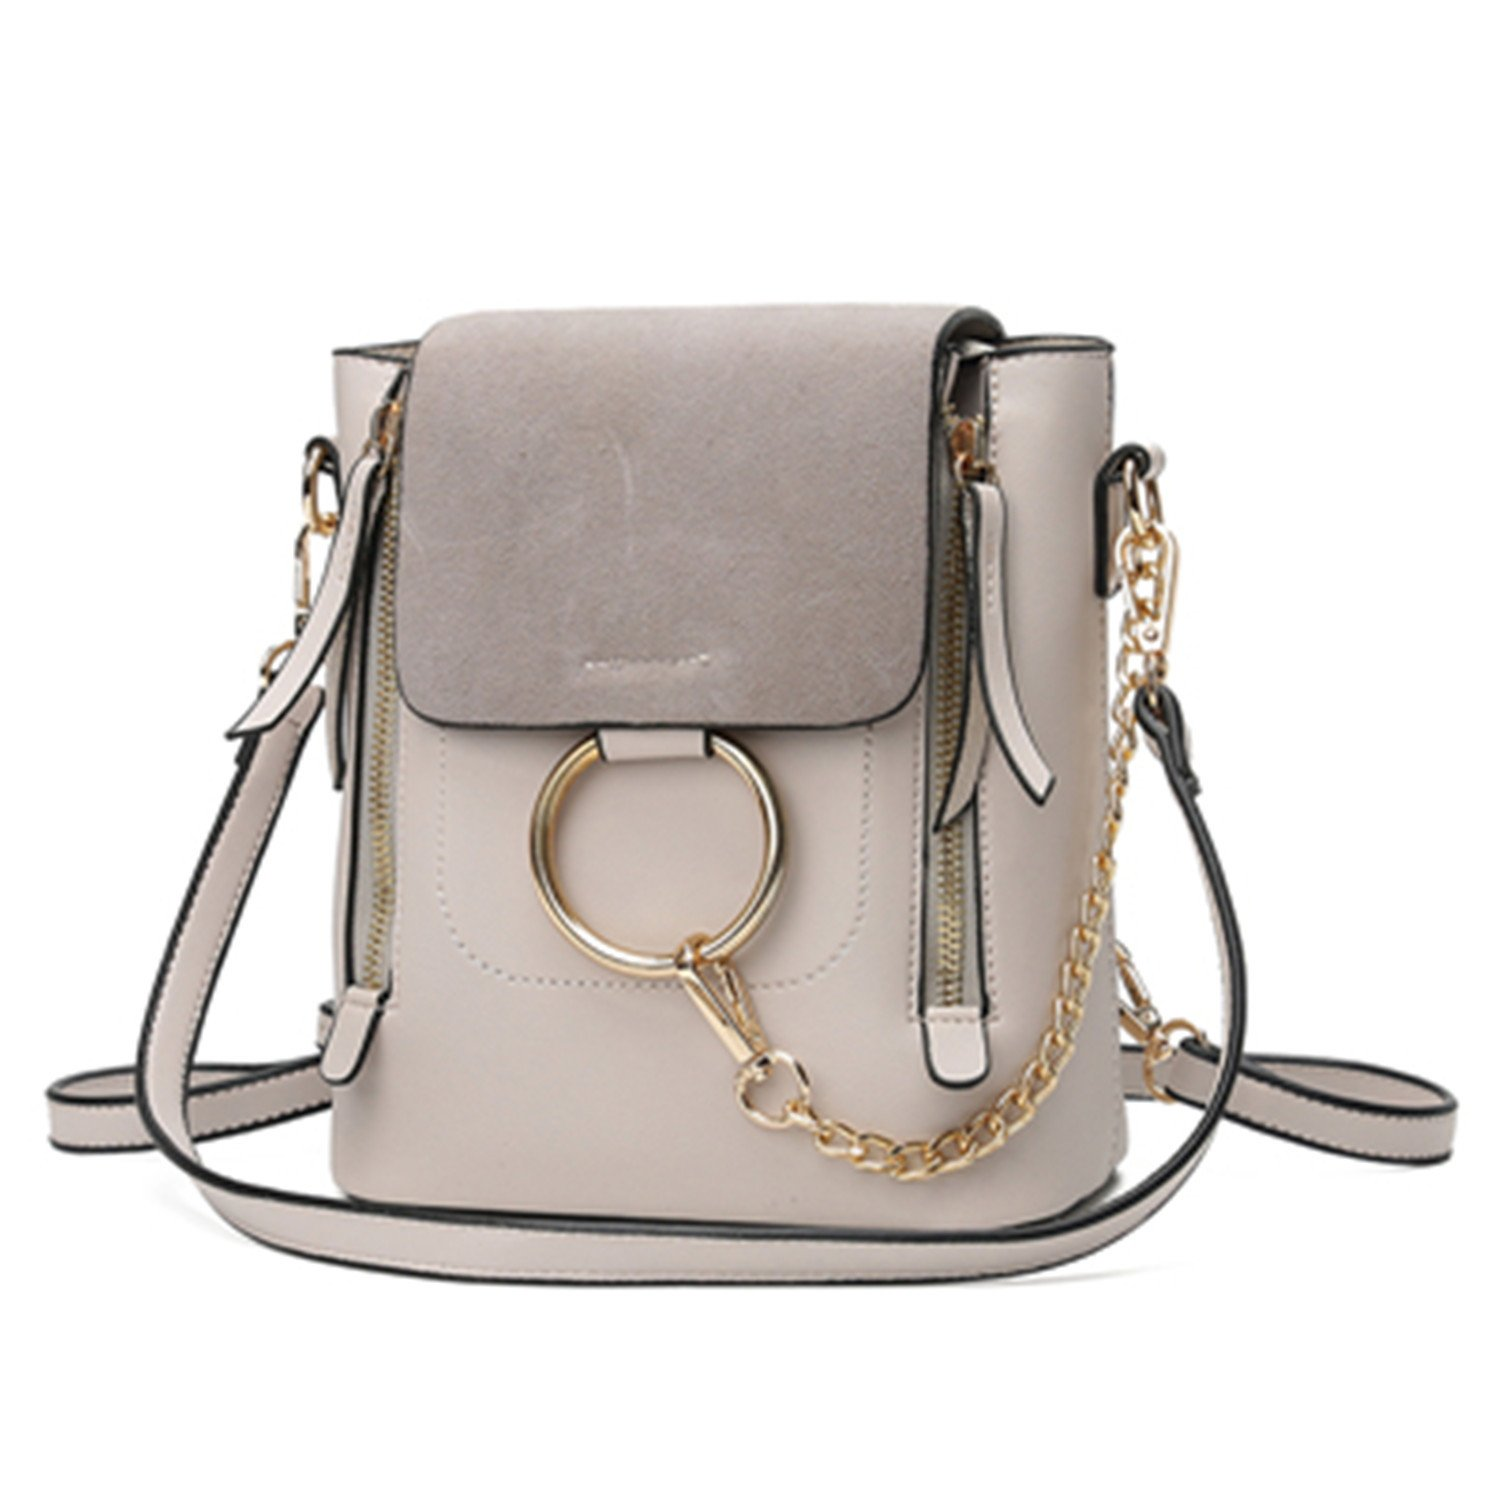 Acereima Metal Ring Shoulder Bag For Women Suede Chain Crossbody Bag Vintage Leather Bags Women Handbags Famous Brands Mochilas Femininas Beige 28cm 12cm ...